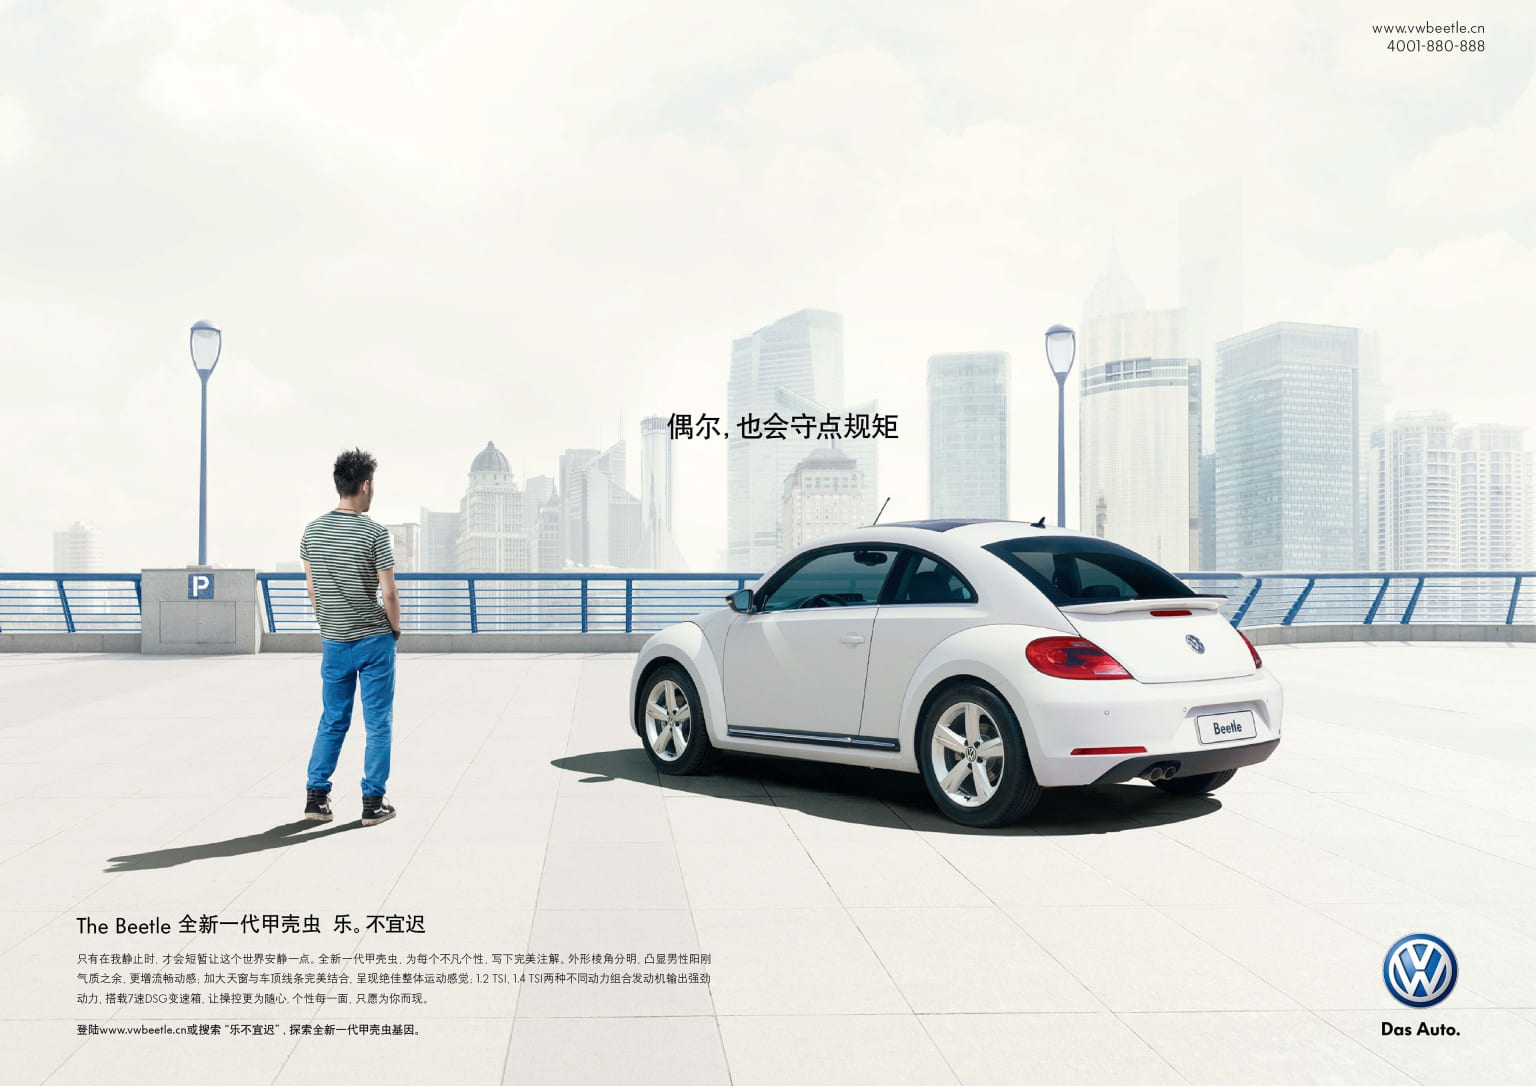 Beetle Launch Campaign for the Chinese market